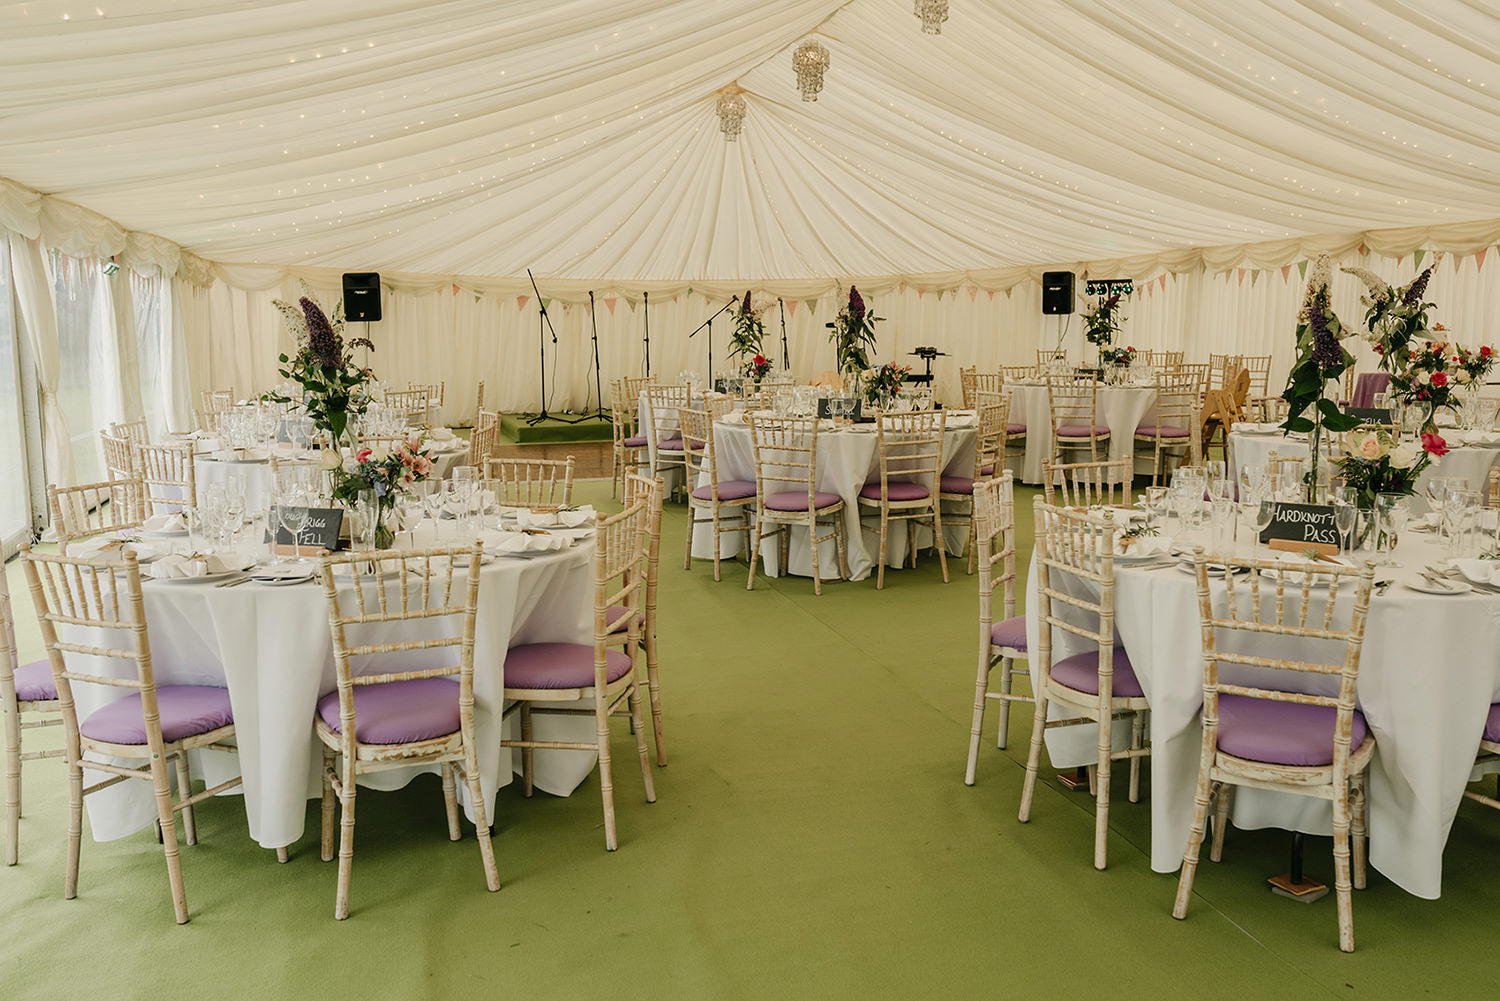 Marquee was provided by A3 Marquees